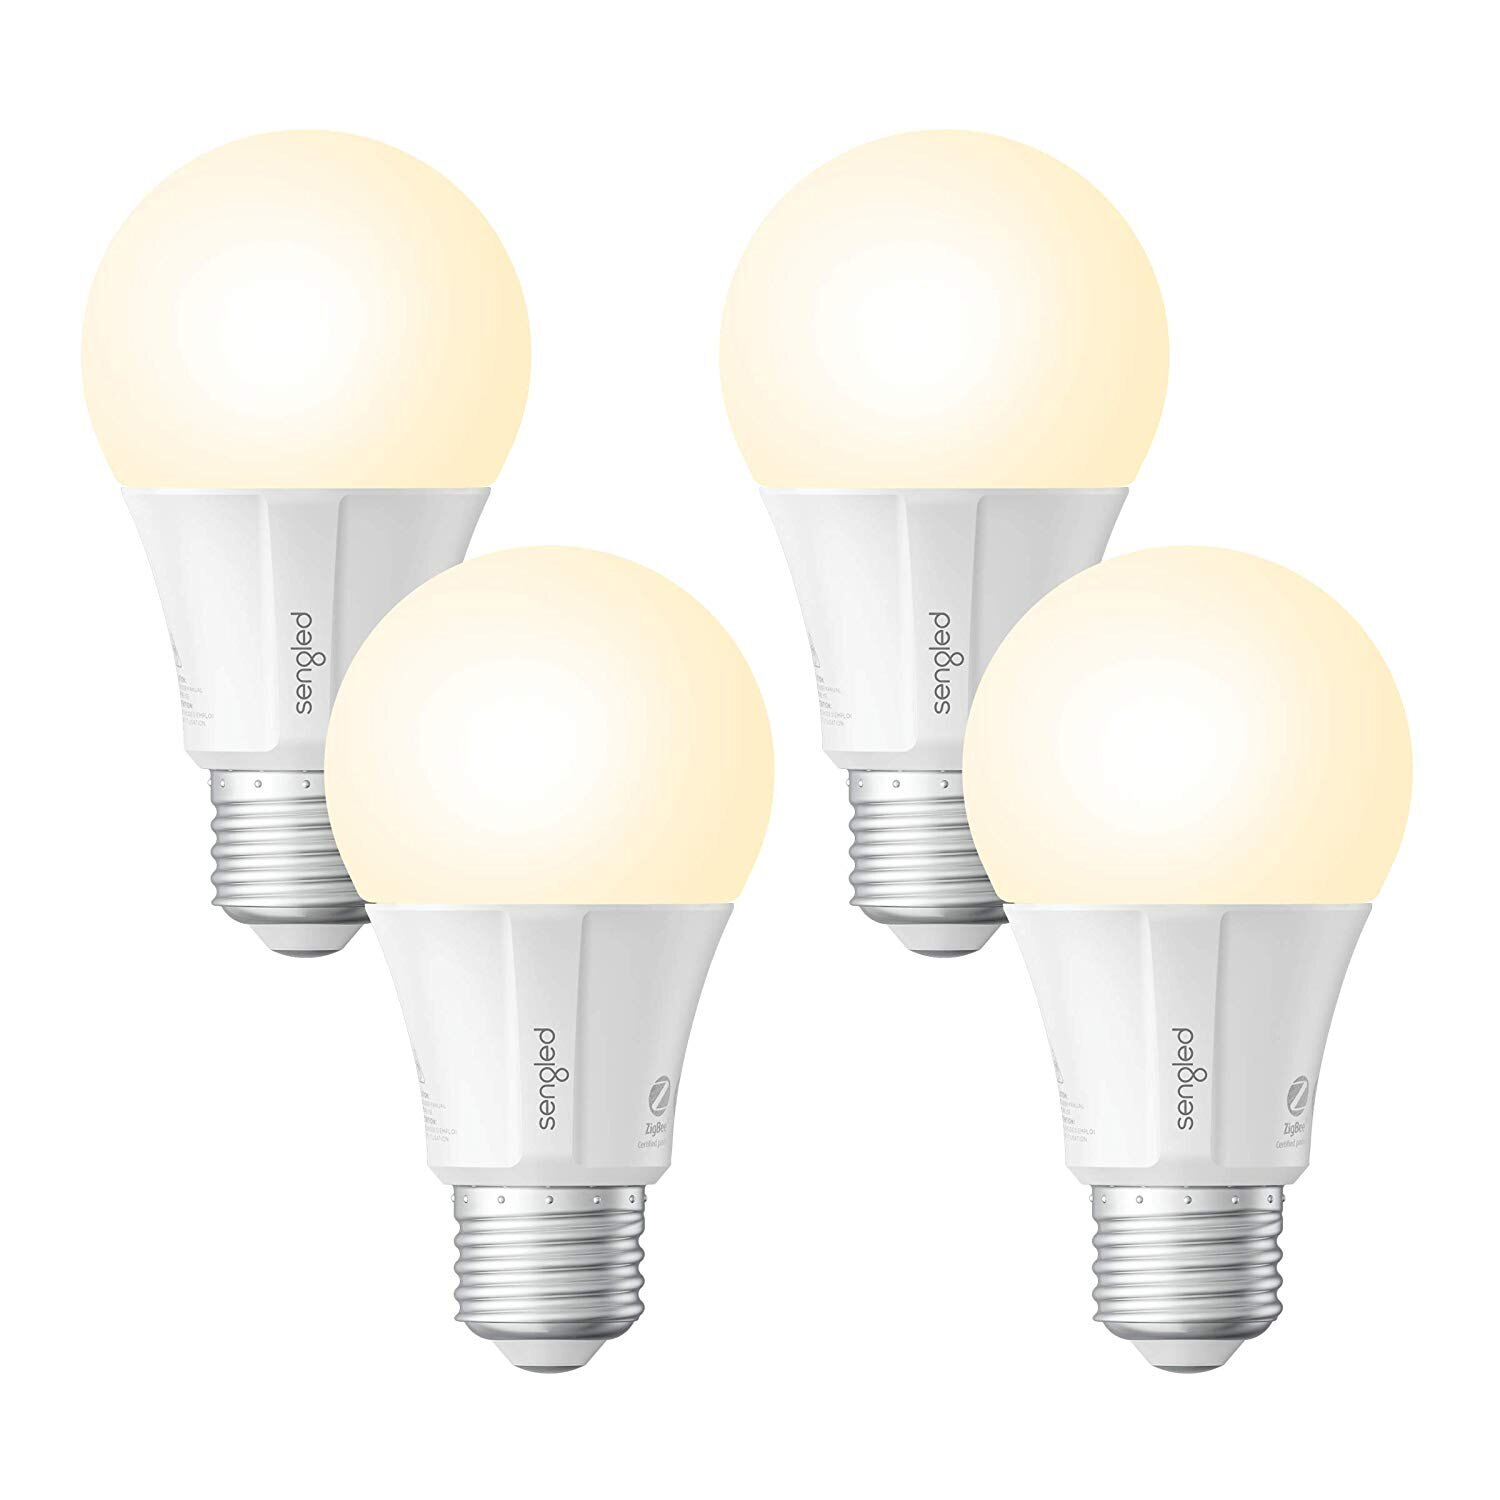 4-Pack Smart LED Soft White Bulb 2700K A19 60W Works With Alexa Google Assistant